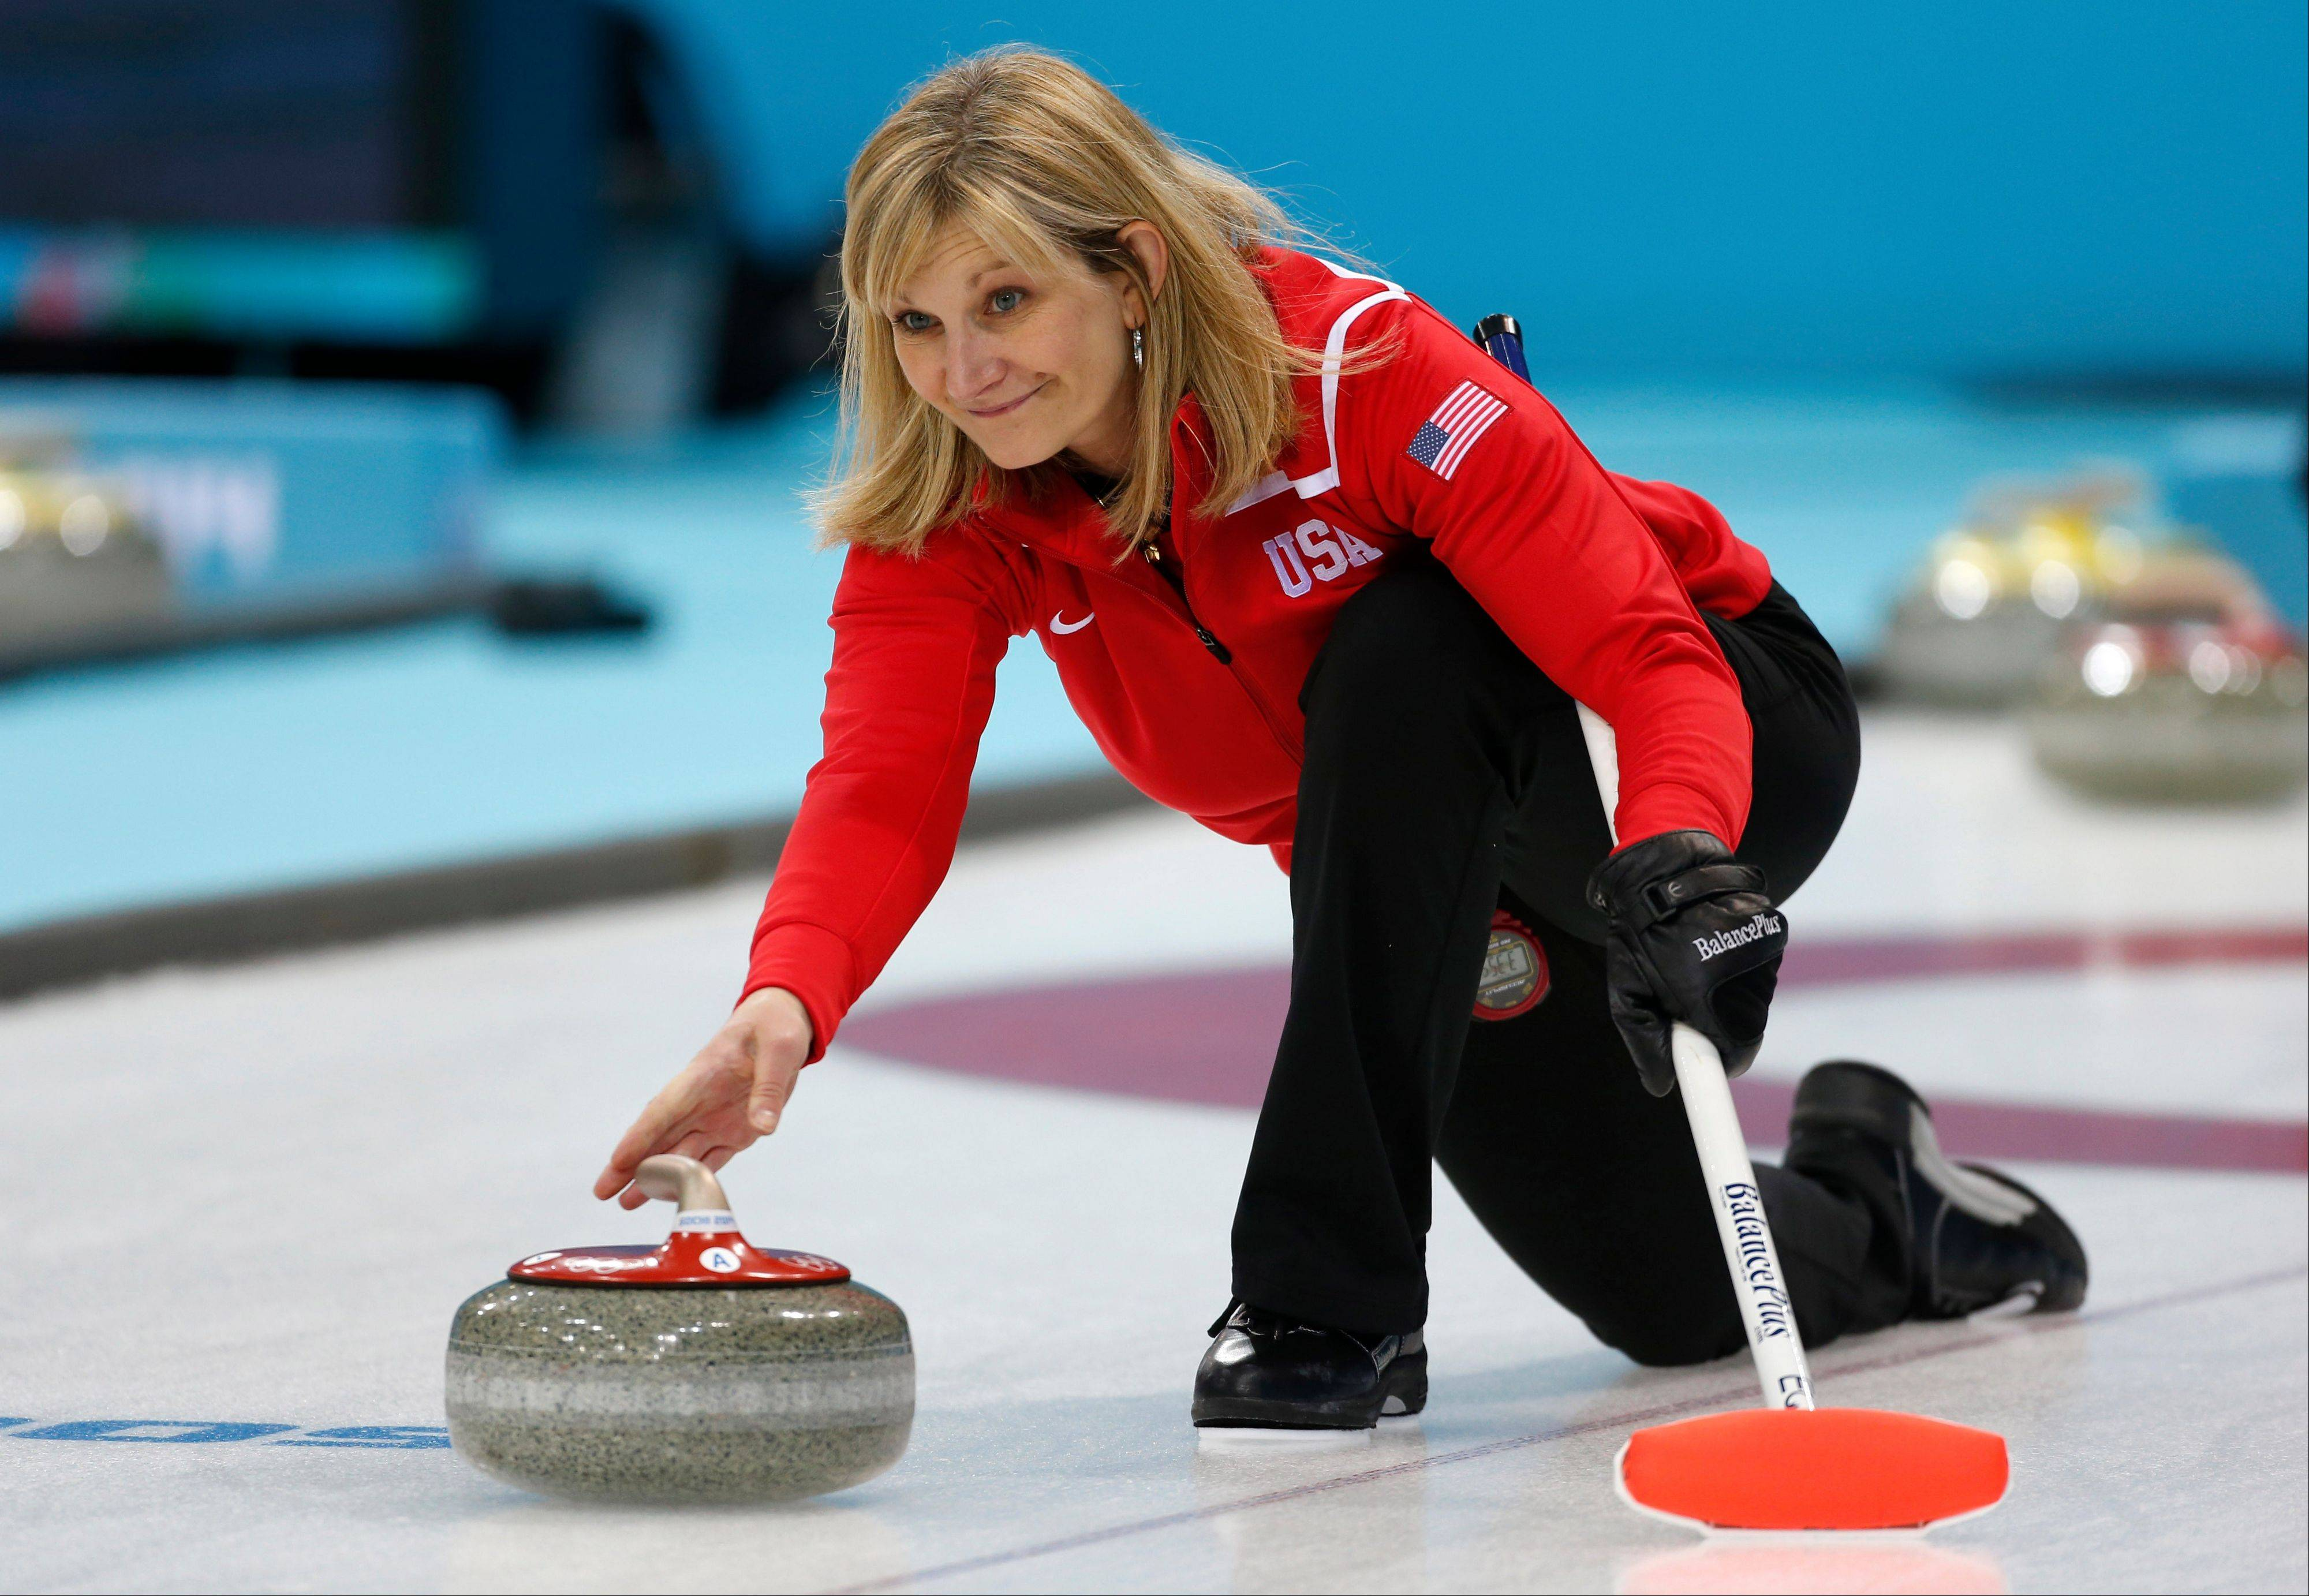 Erika Brown, skip of Team USA, delivers the stone during a women's curling training session at the 2014 Winter Olympics, Sunday, Feb. 9, 2014, in Sochi, Russia.